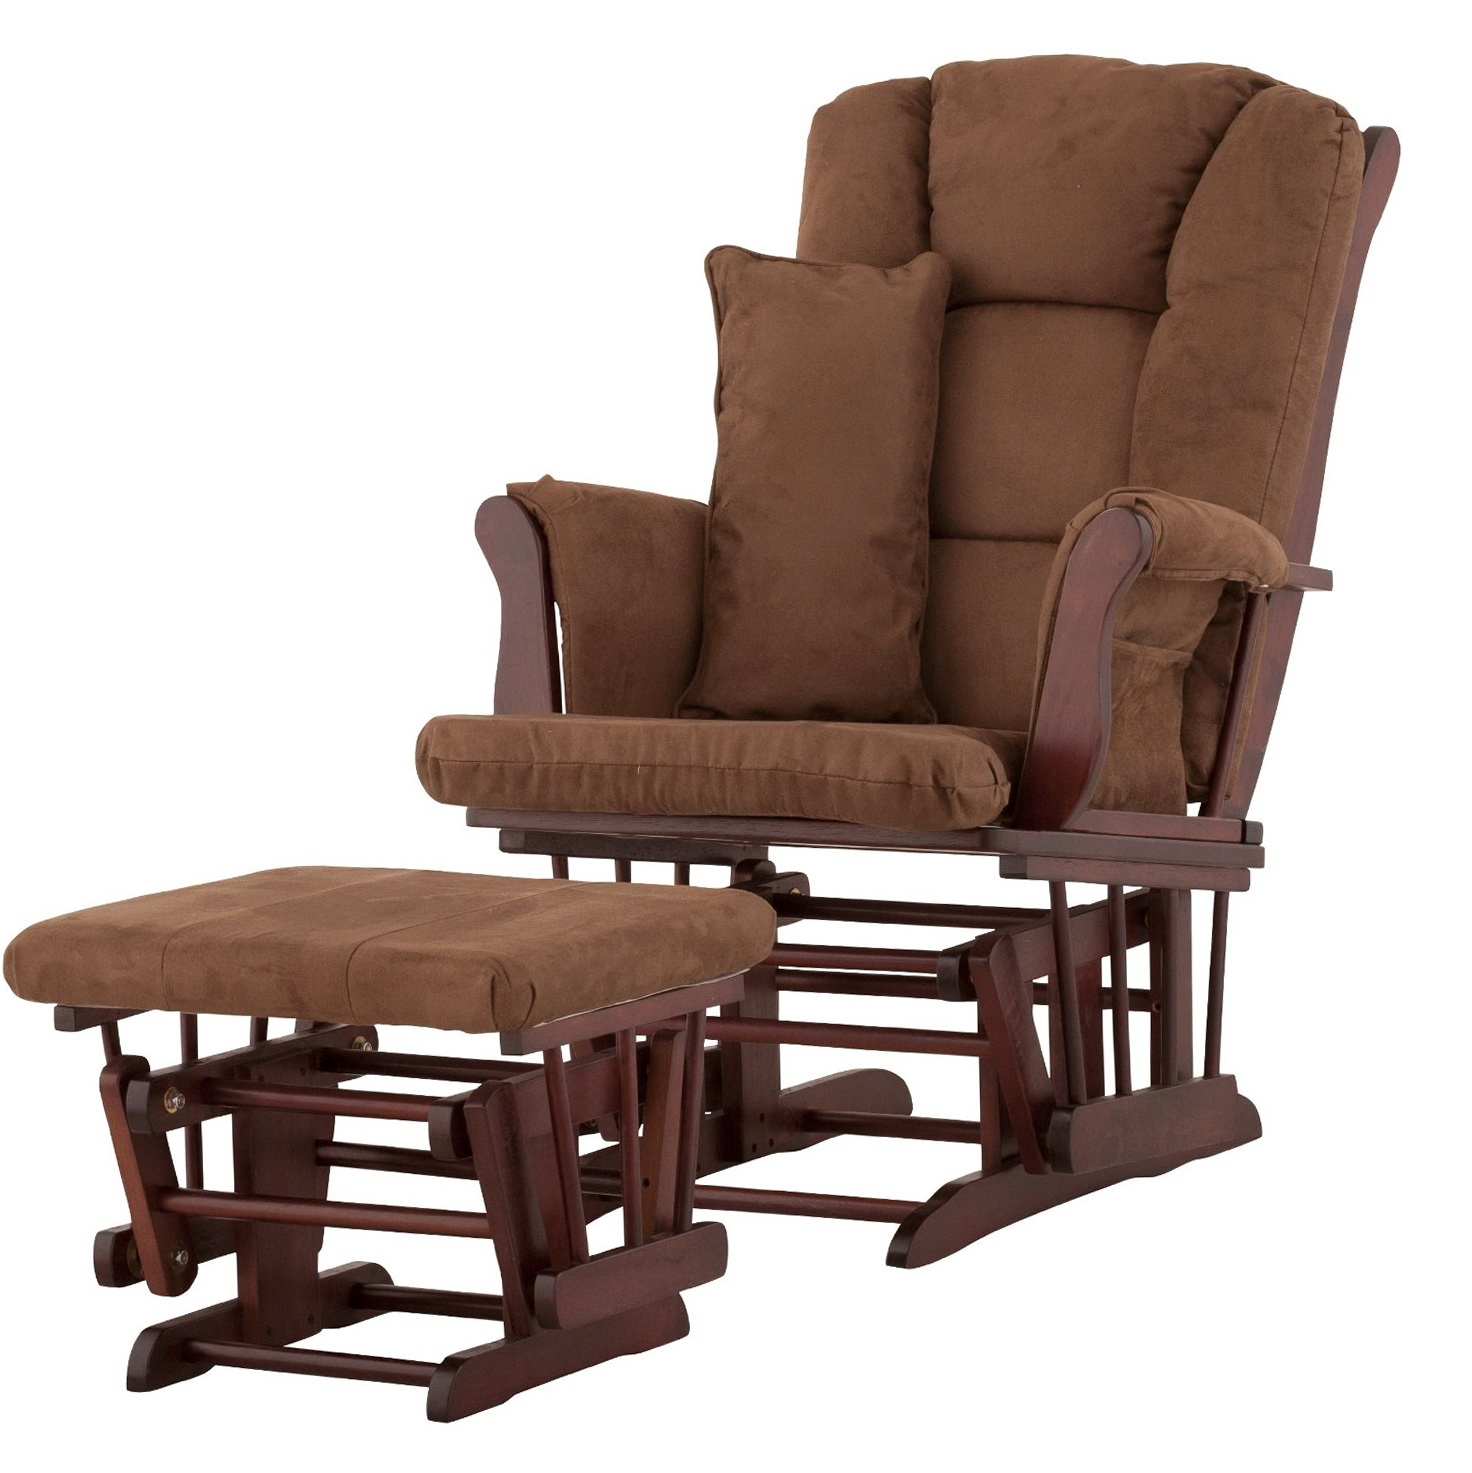 Glider Rocker Cushion Set Replacement